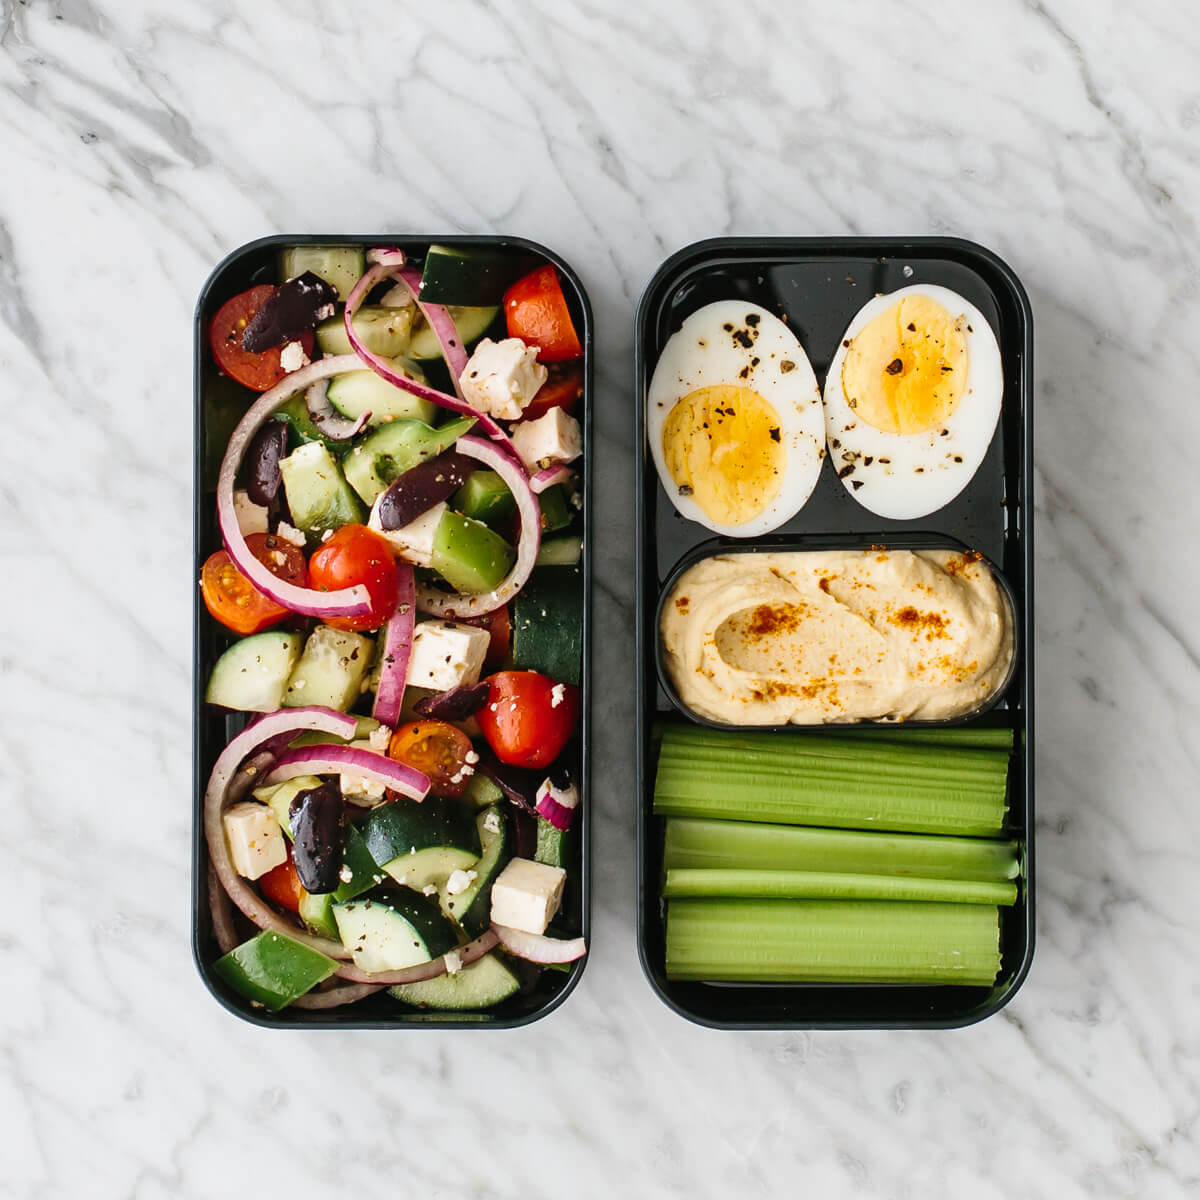 Bento box filled with Greek salad, hard boiled egg, celery and hummus.